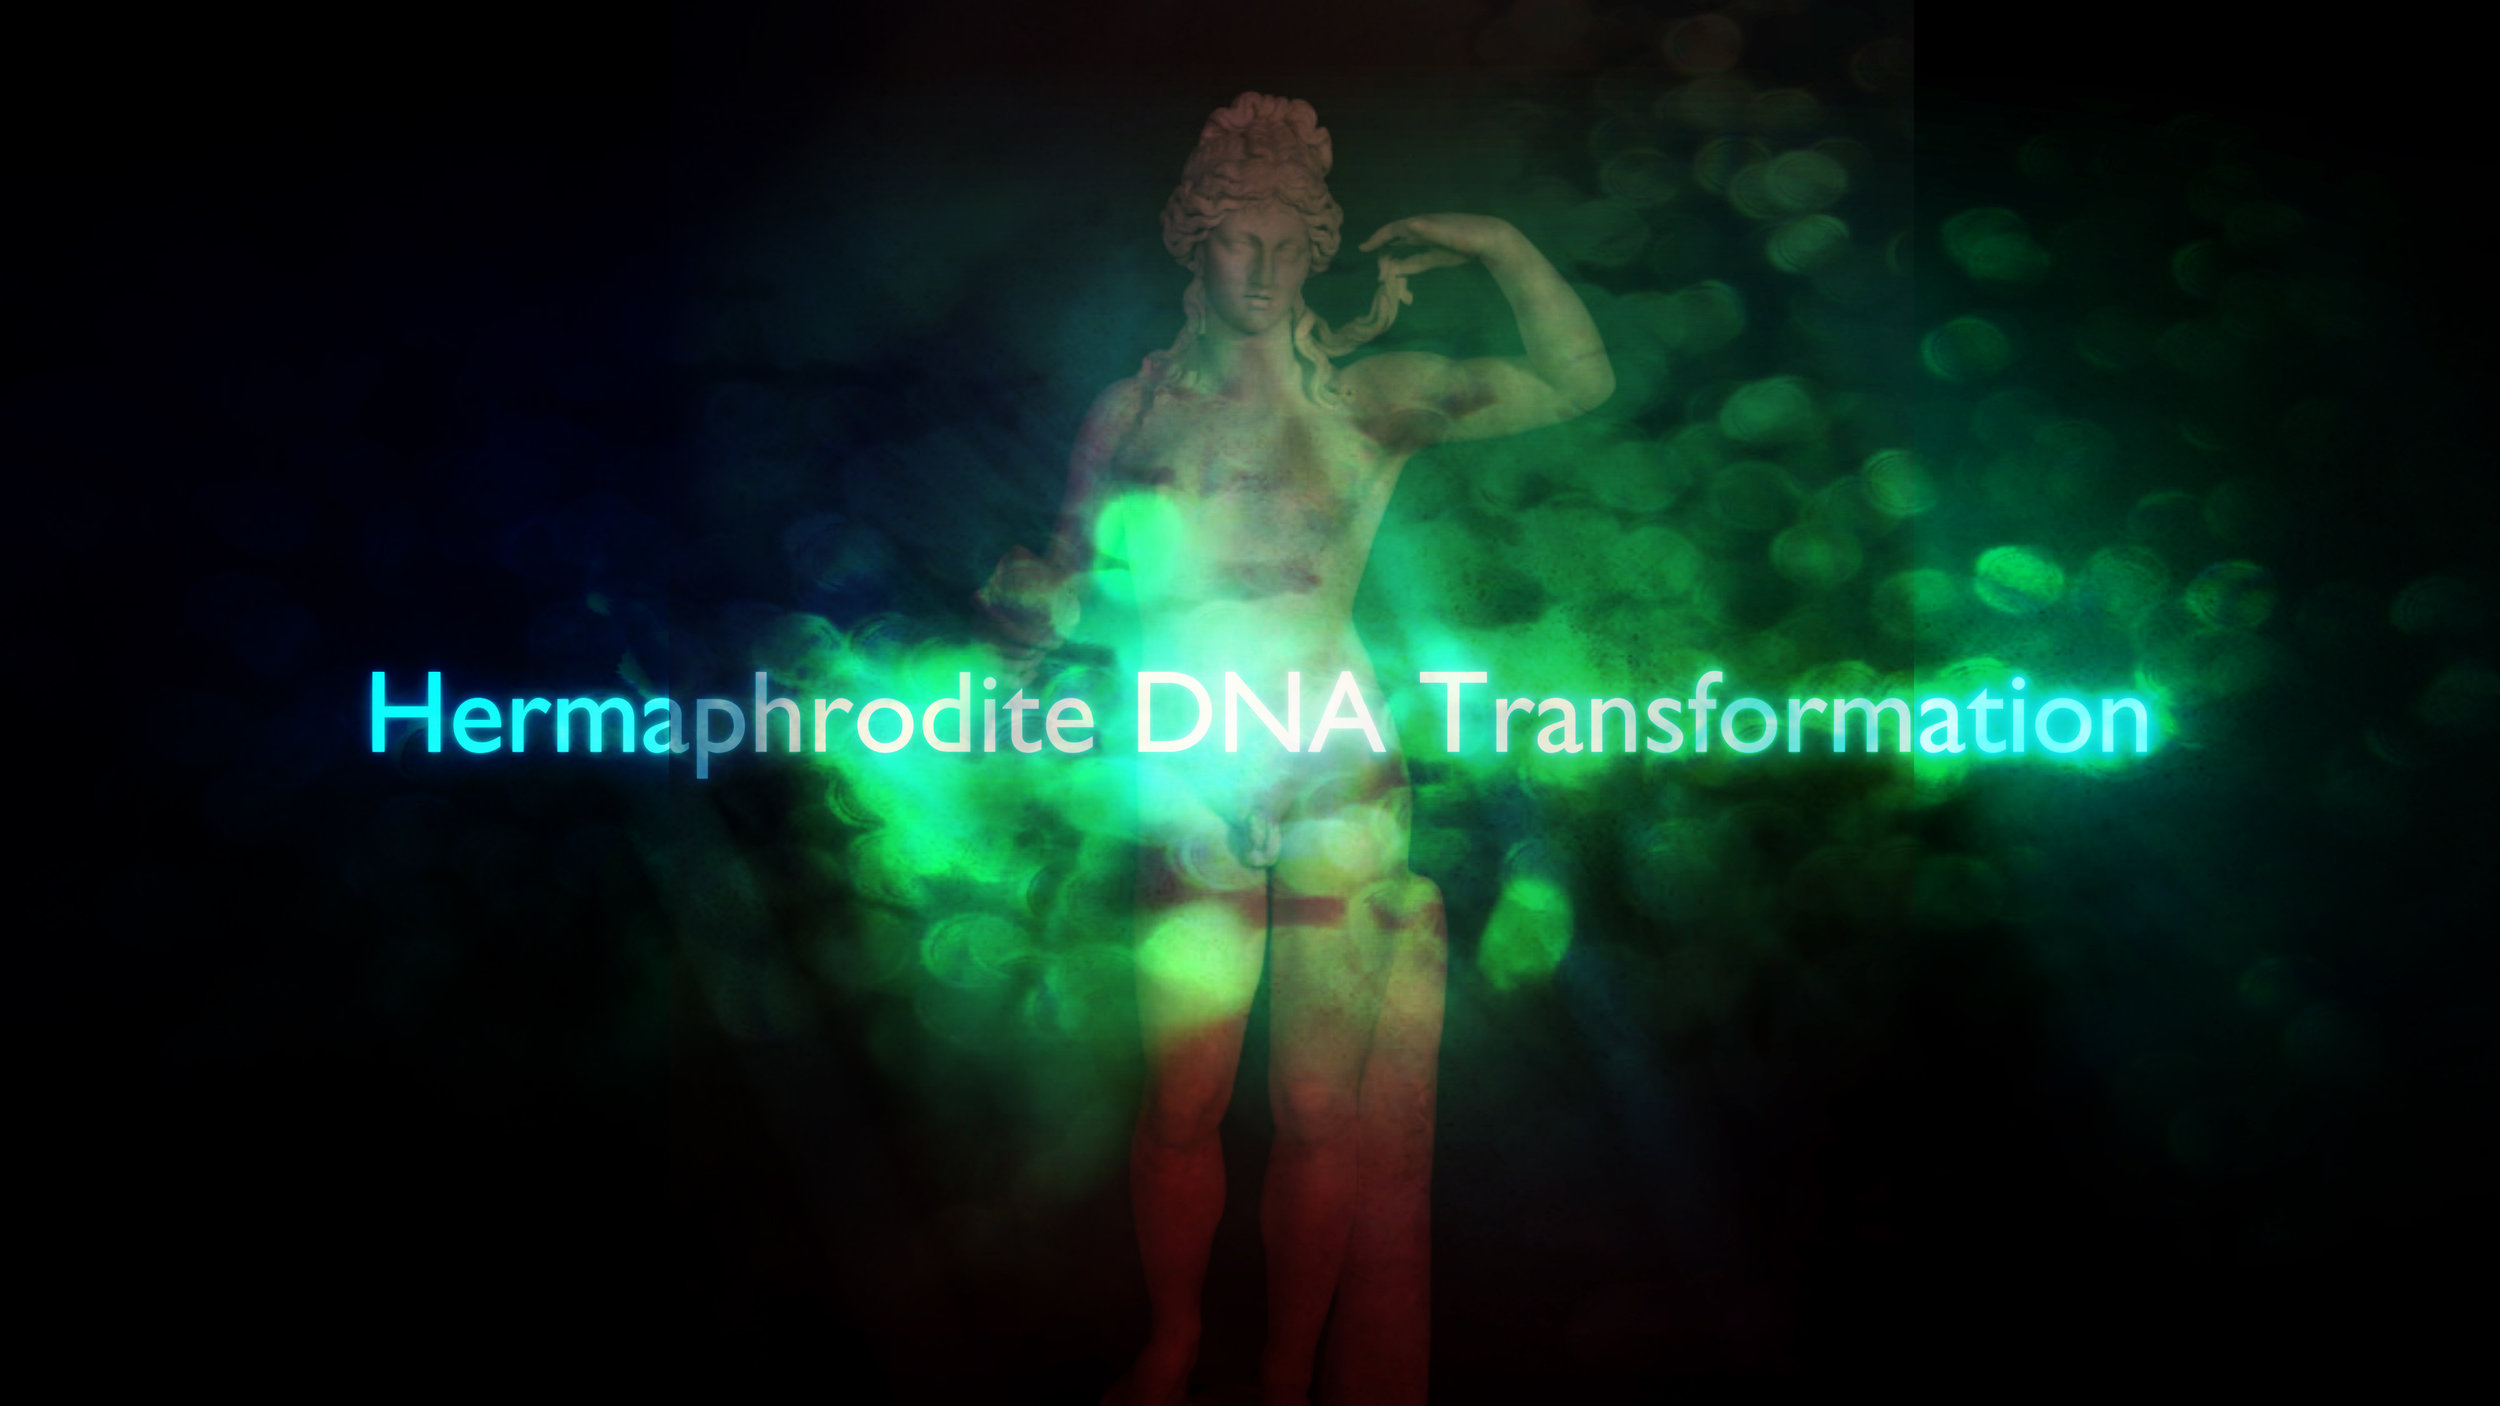 Hermaphrodite_DNA_Transformation.jpg